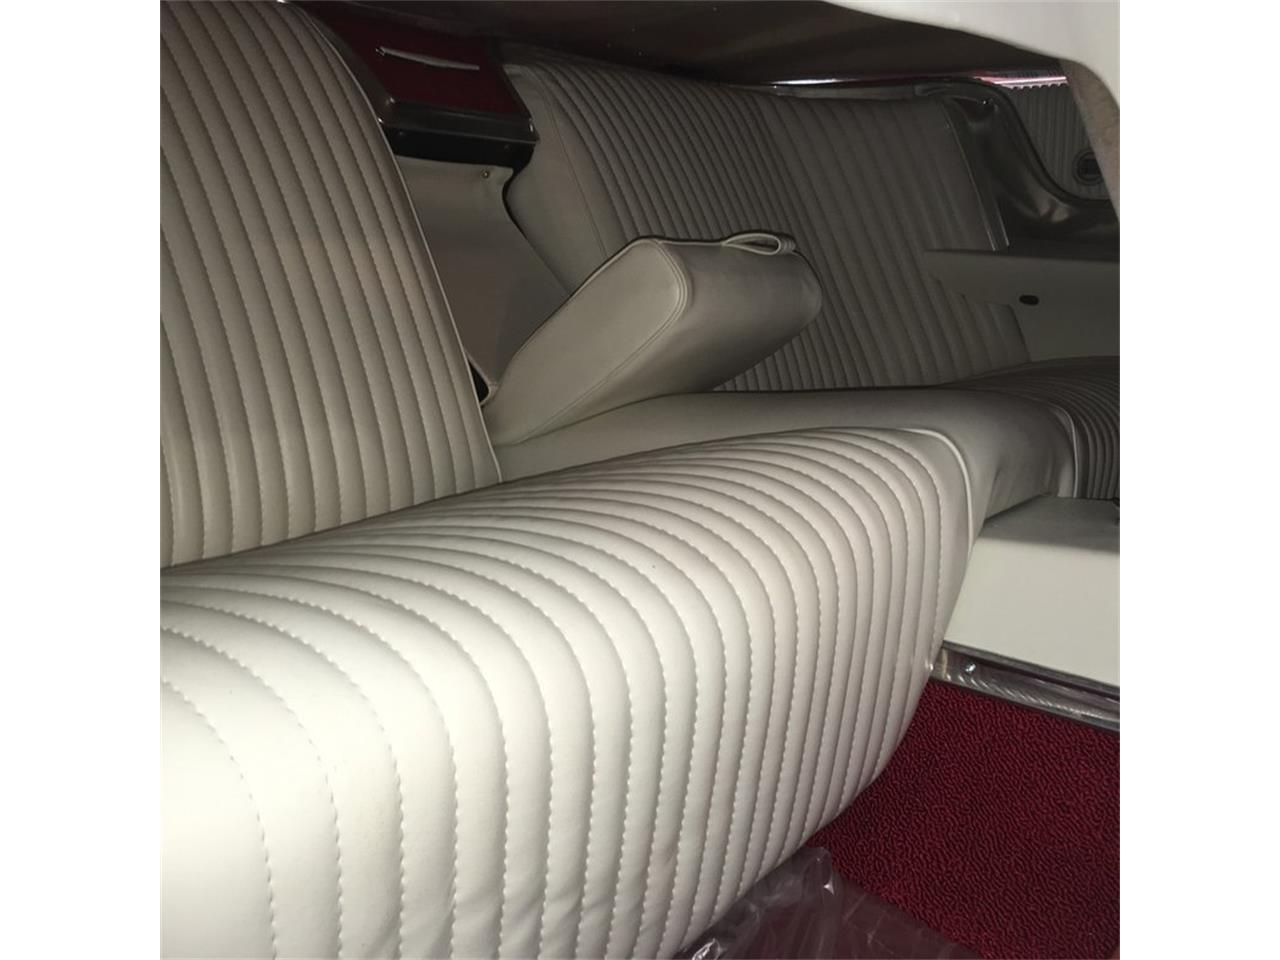 Large Picture of '64 Ford Thunderbird located in Tulsa Oklahoma Auction Vehicle Offered by Leake Auction Company - Q0VV